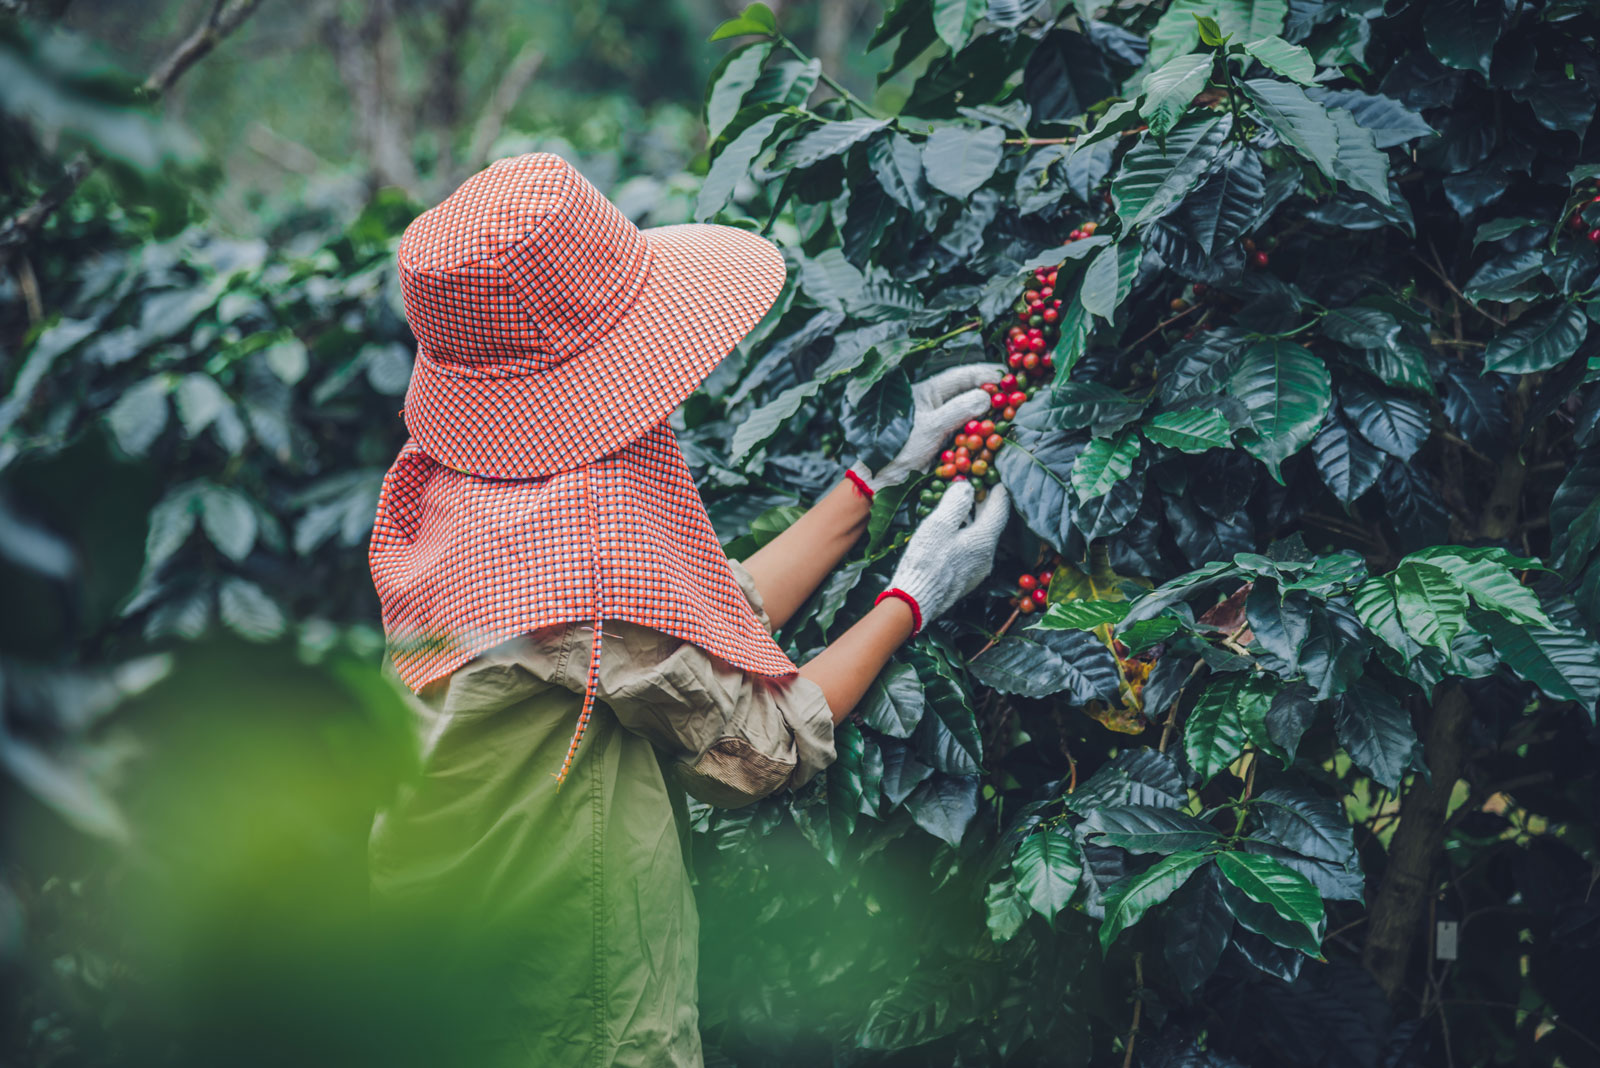 A person gently examining and picking coffee beans from their tree.